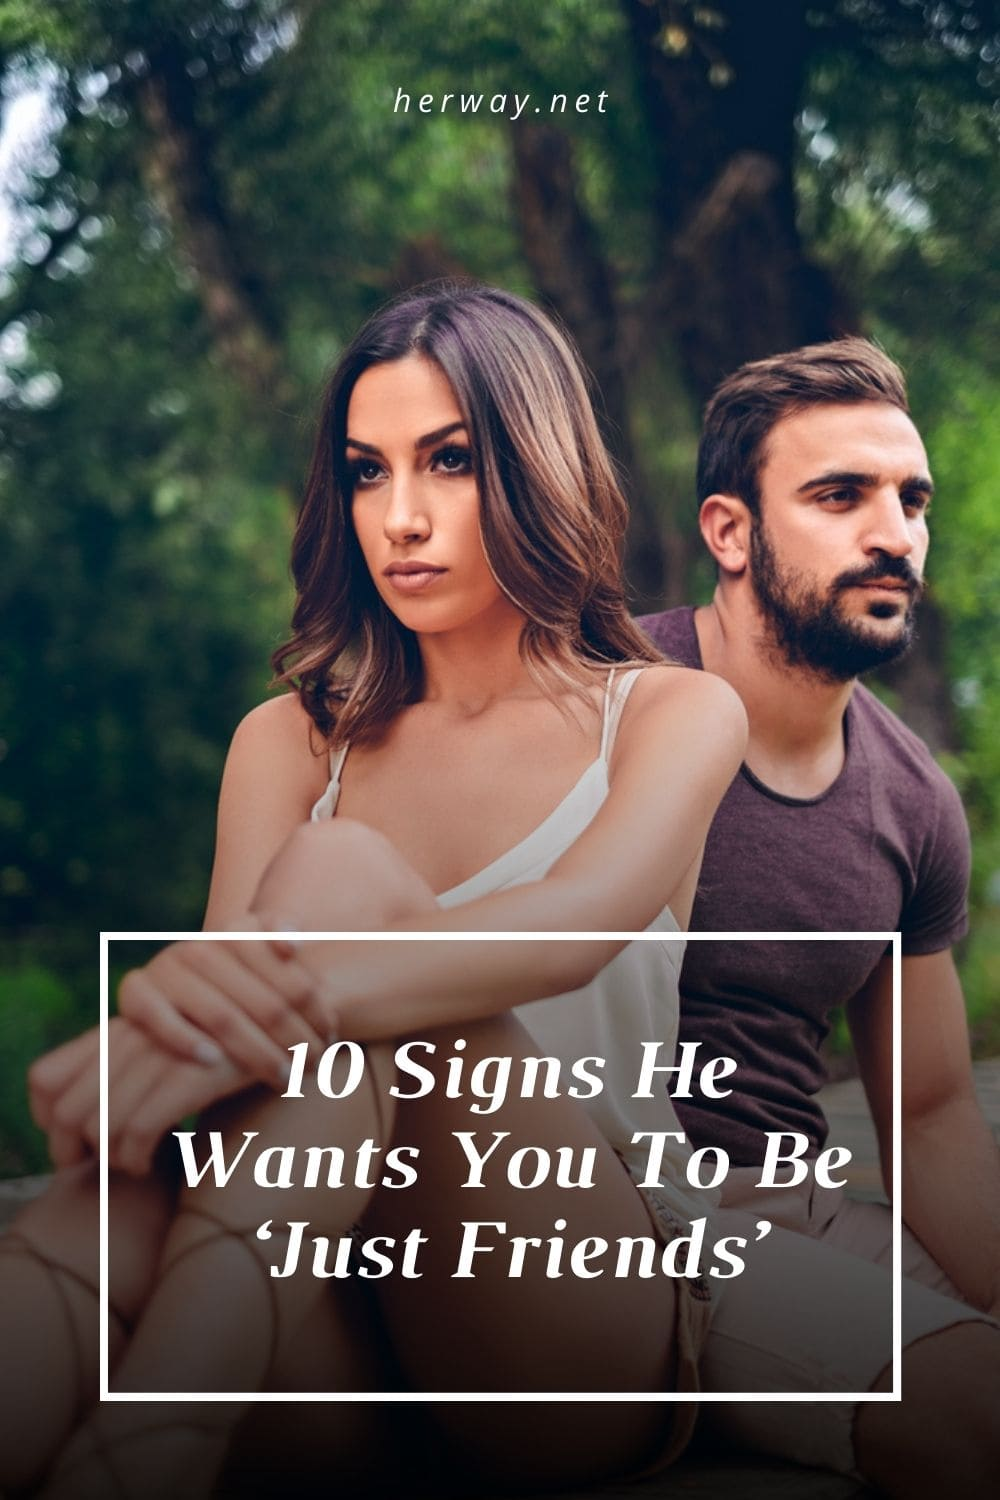 10 Signs He Wants You To Be 'Just Friends'